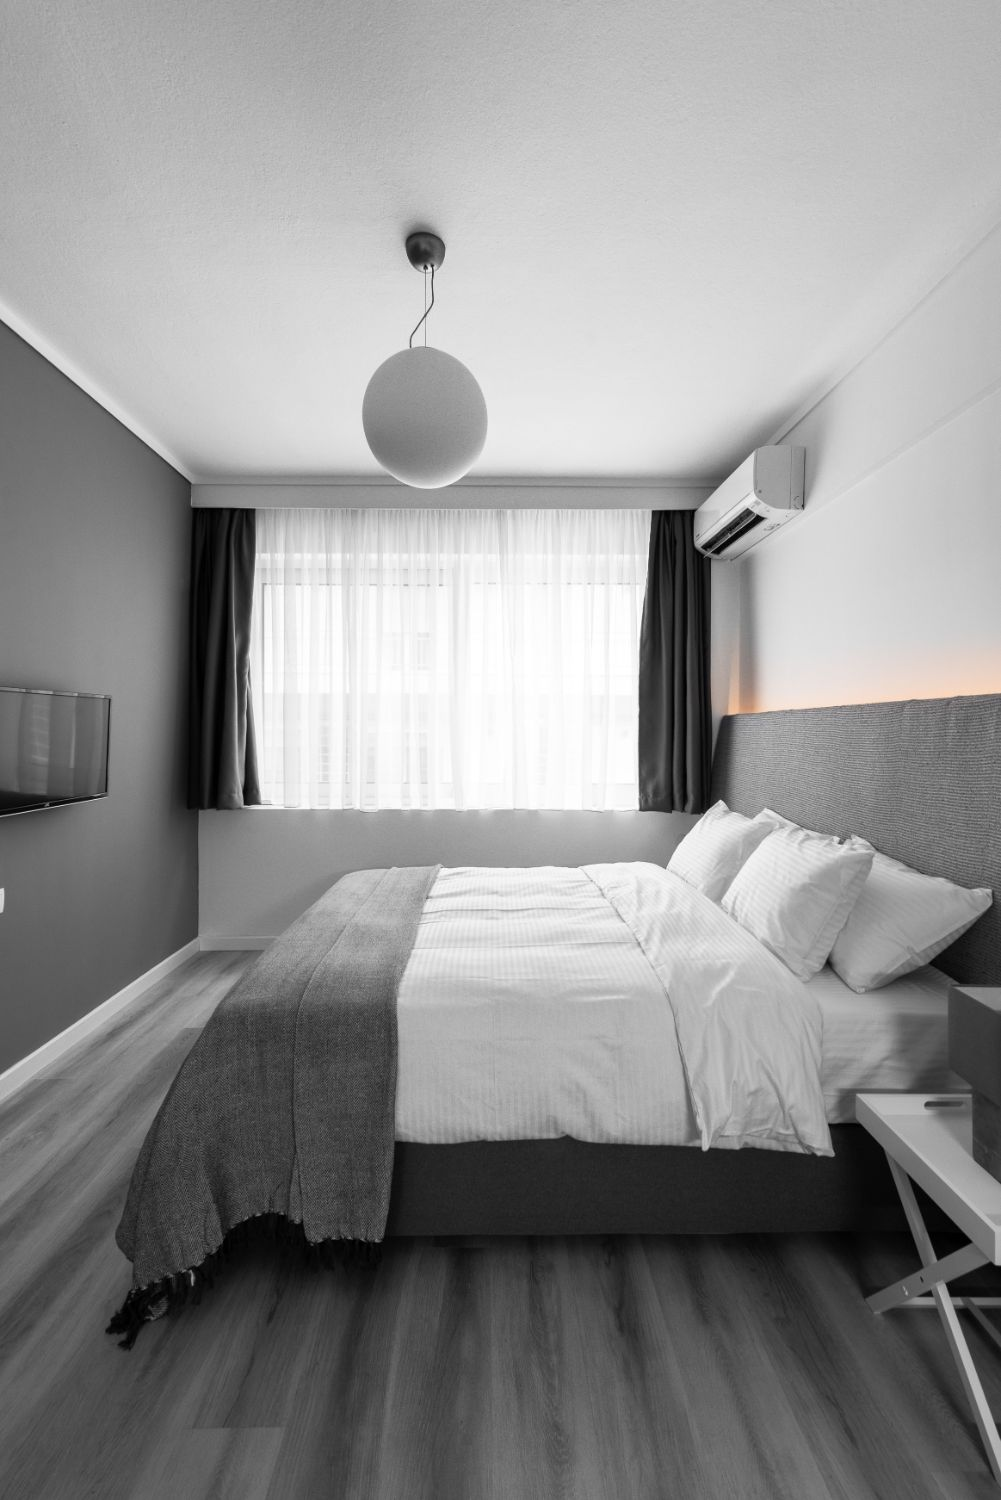 Suite #1, Bedroom area with 1 double bed and TV